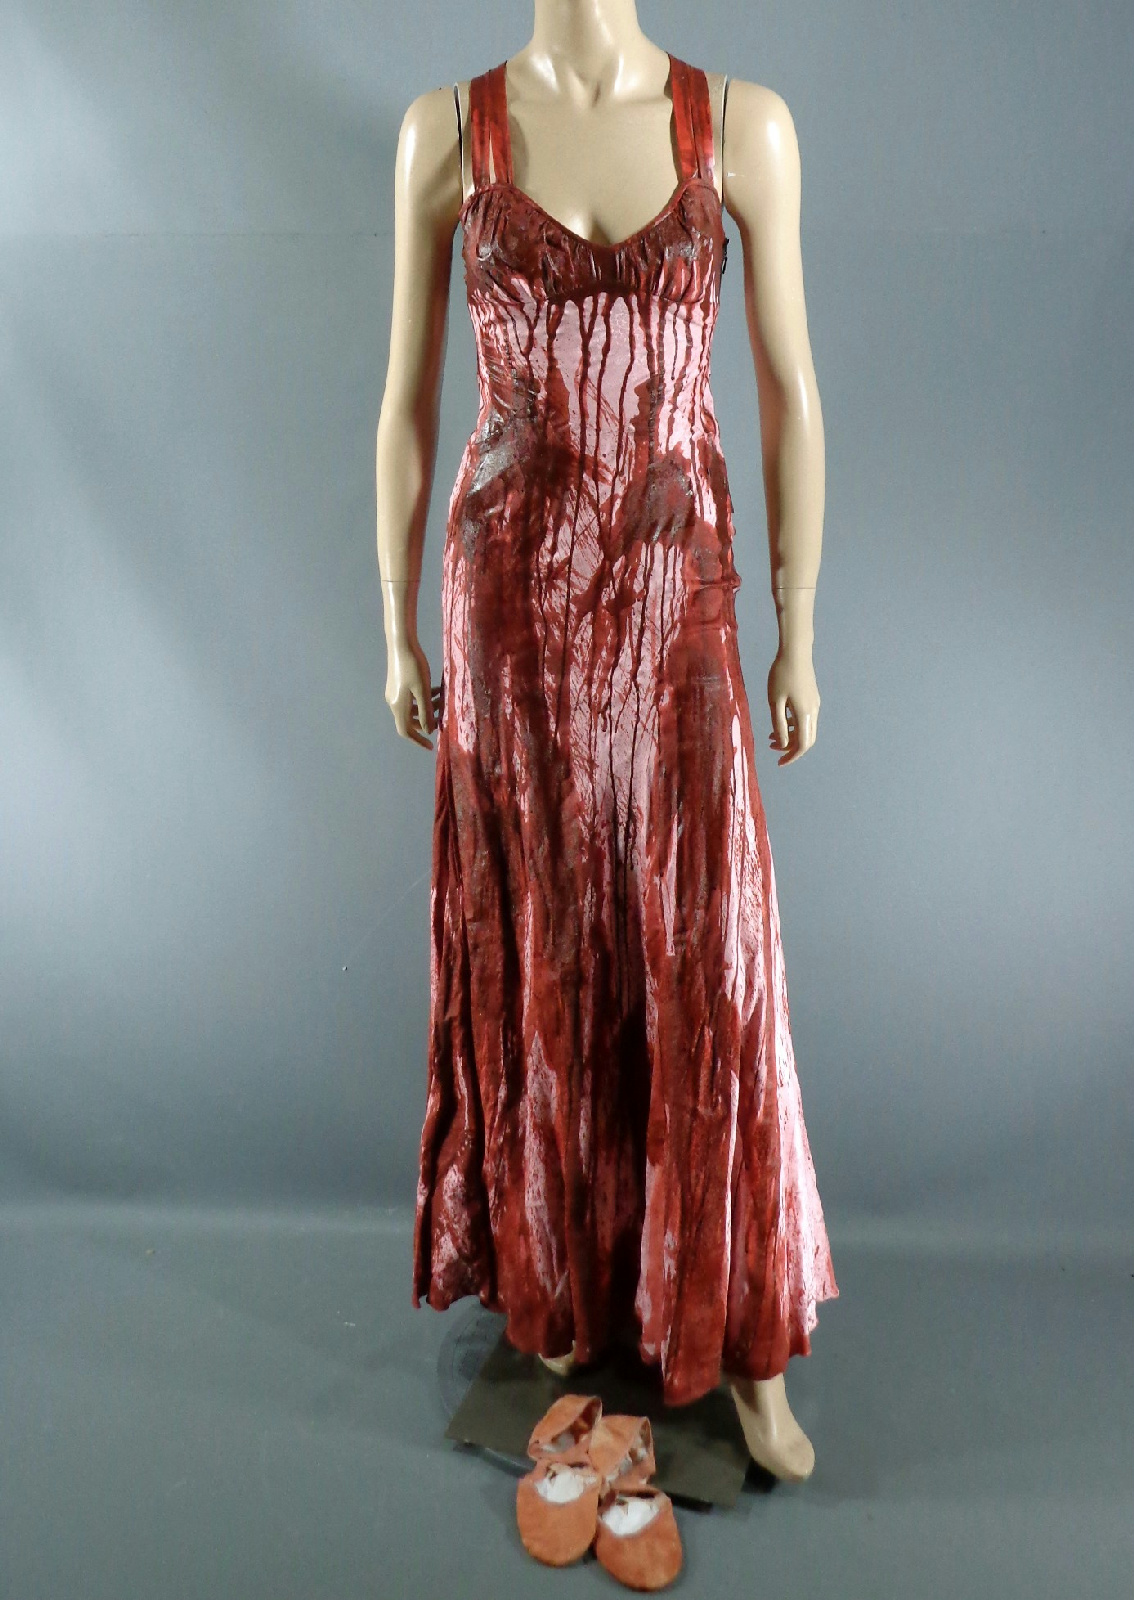 Carrie White's Prom Dress